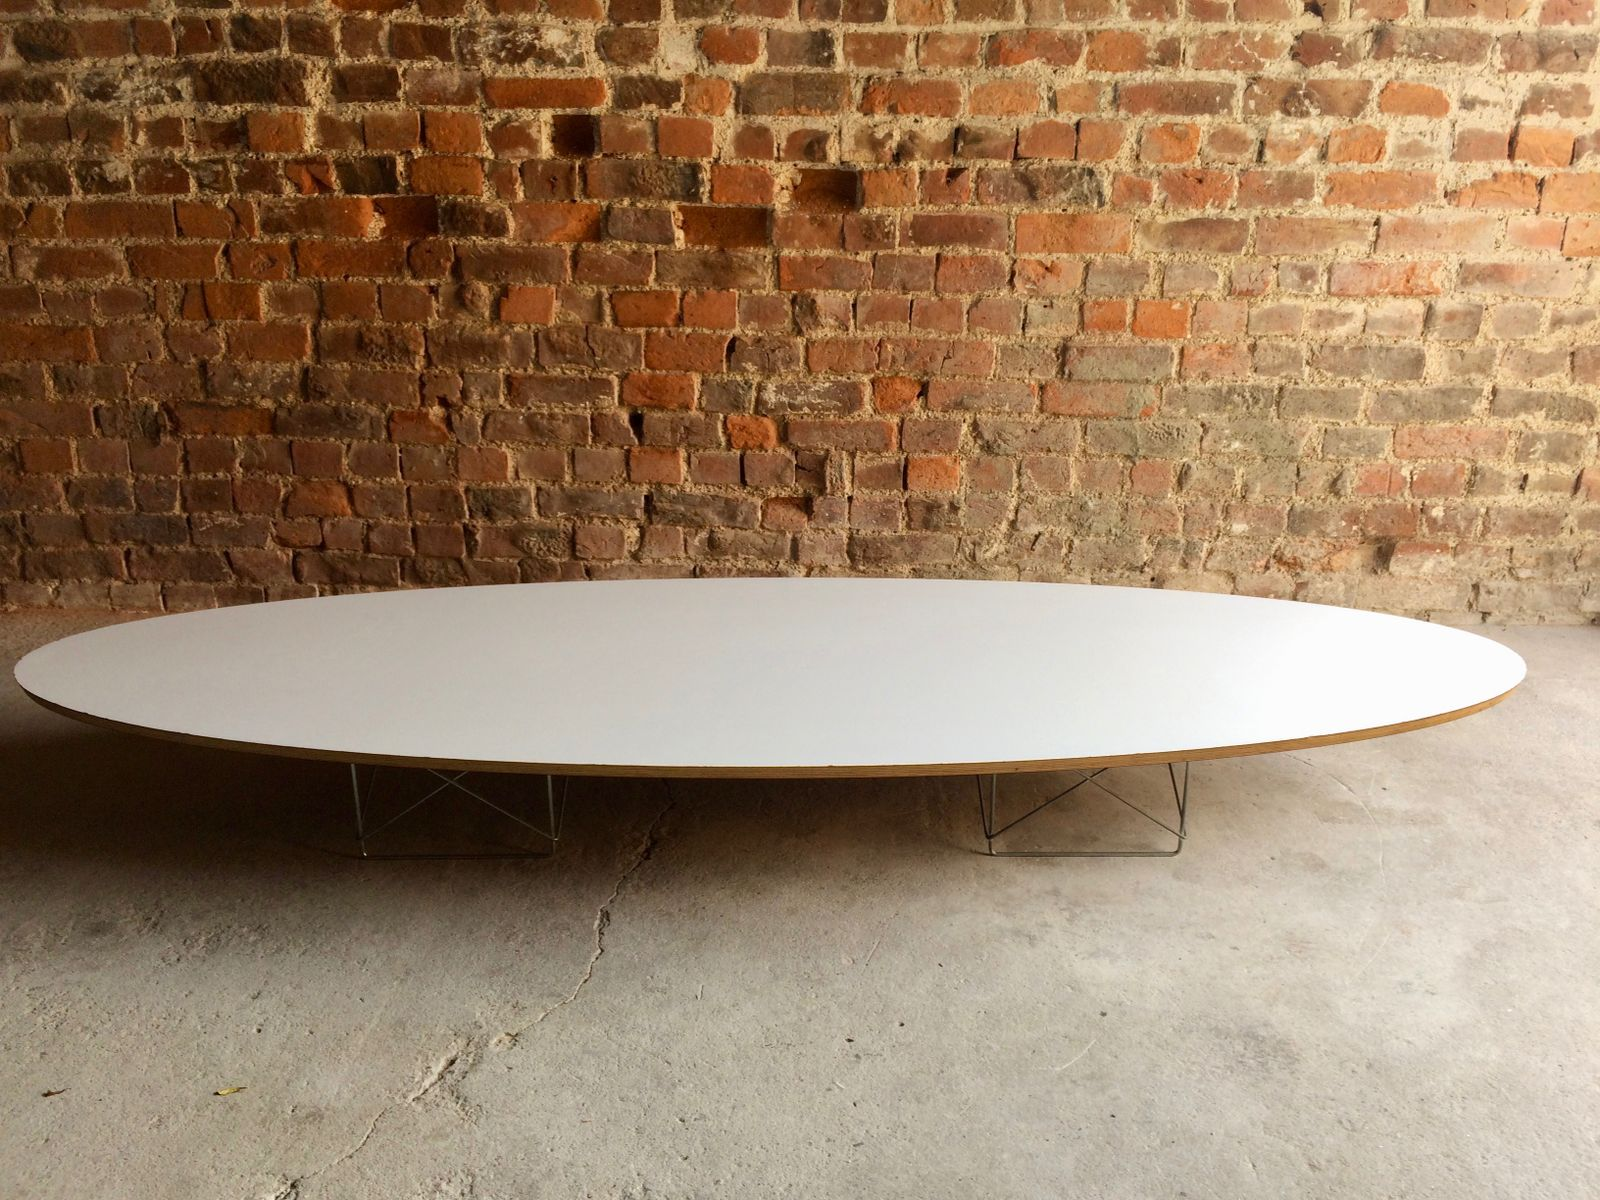 vintage elliptical coffee table by charles ray eames for herman